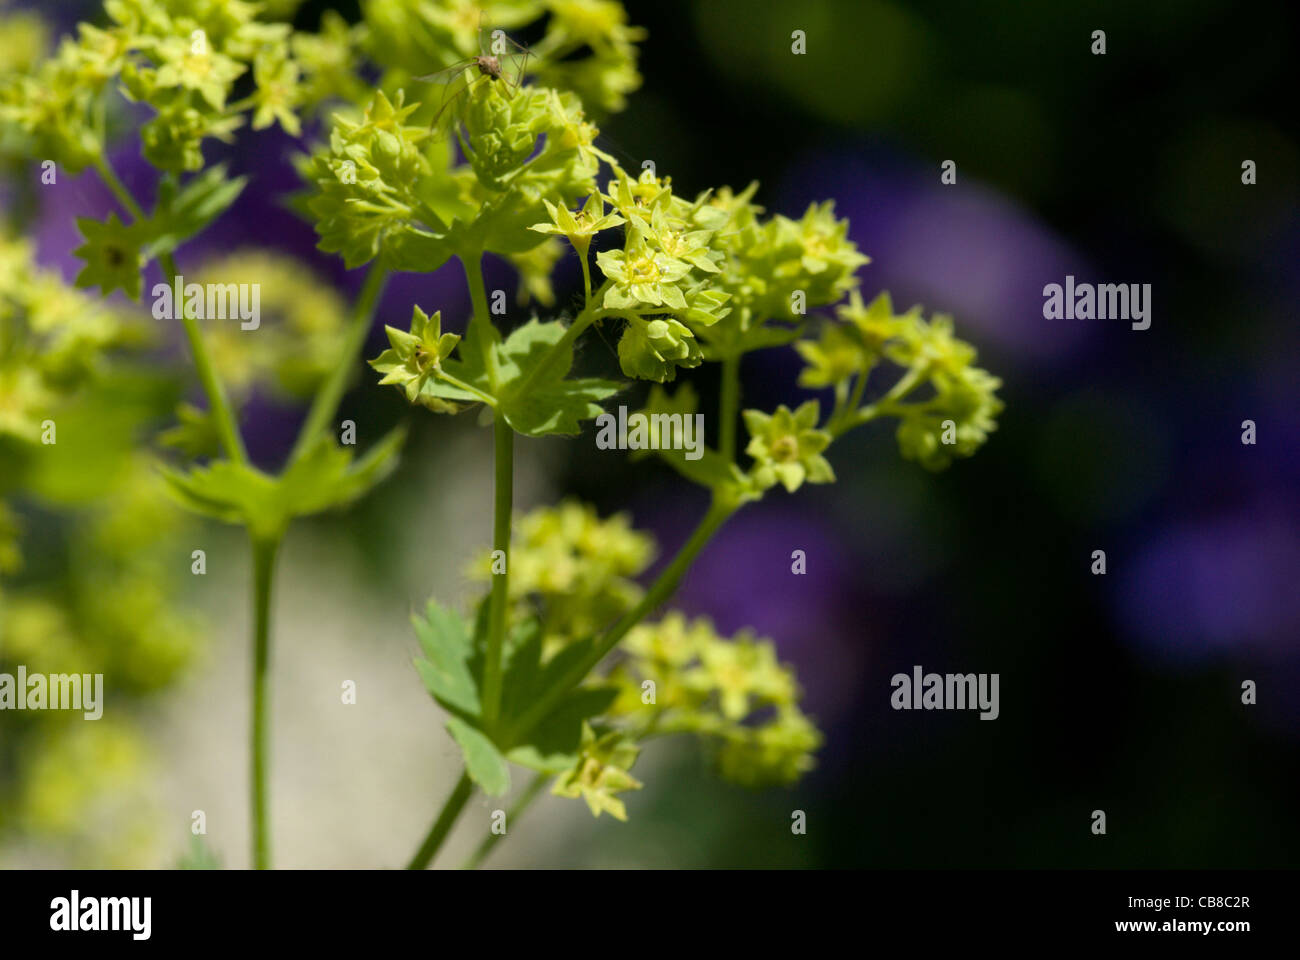 Tiny starry pale green flowers open on an Alchemilla mollis or Lady's Mantle - Stock Image